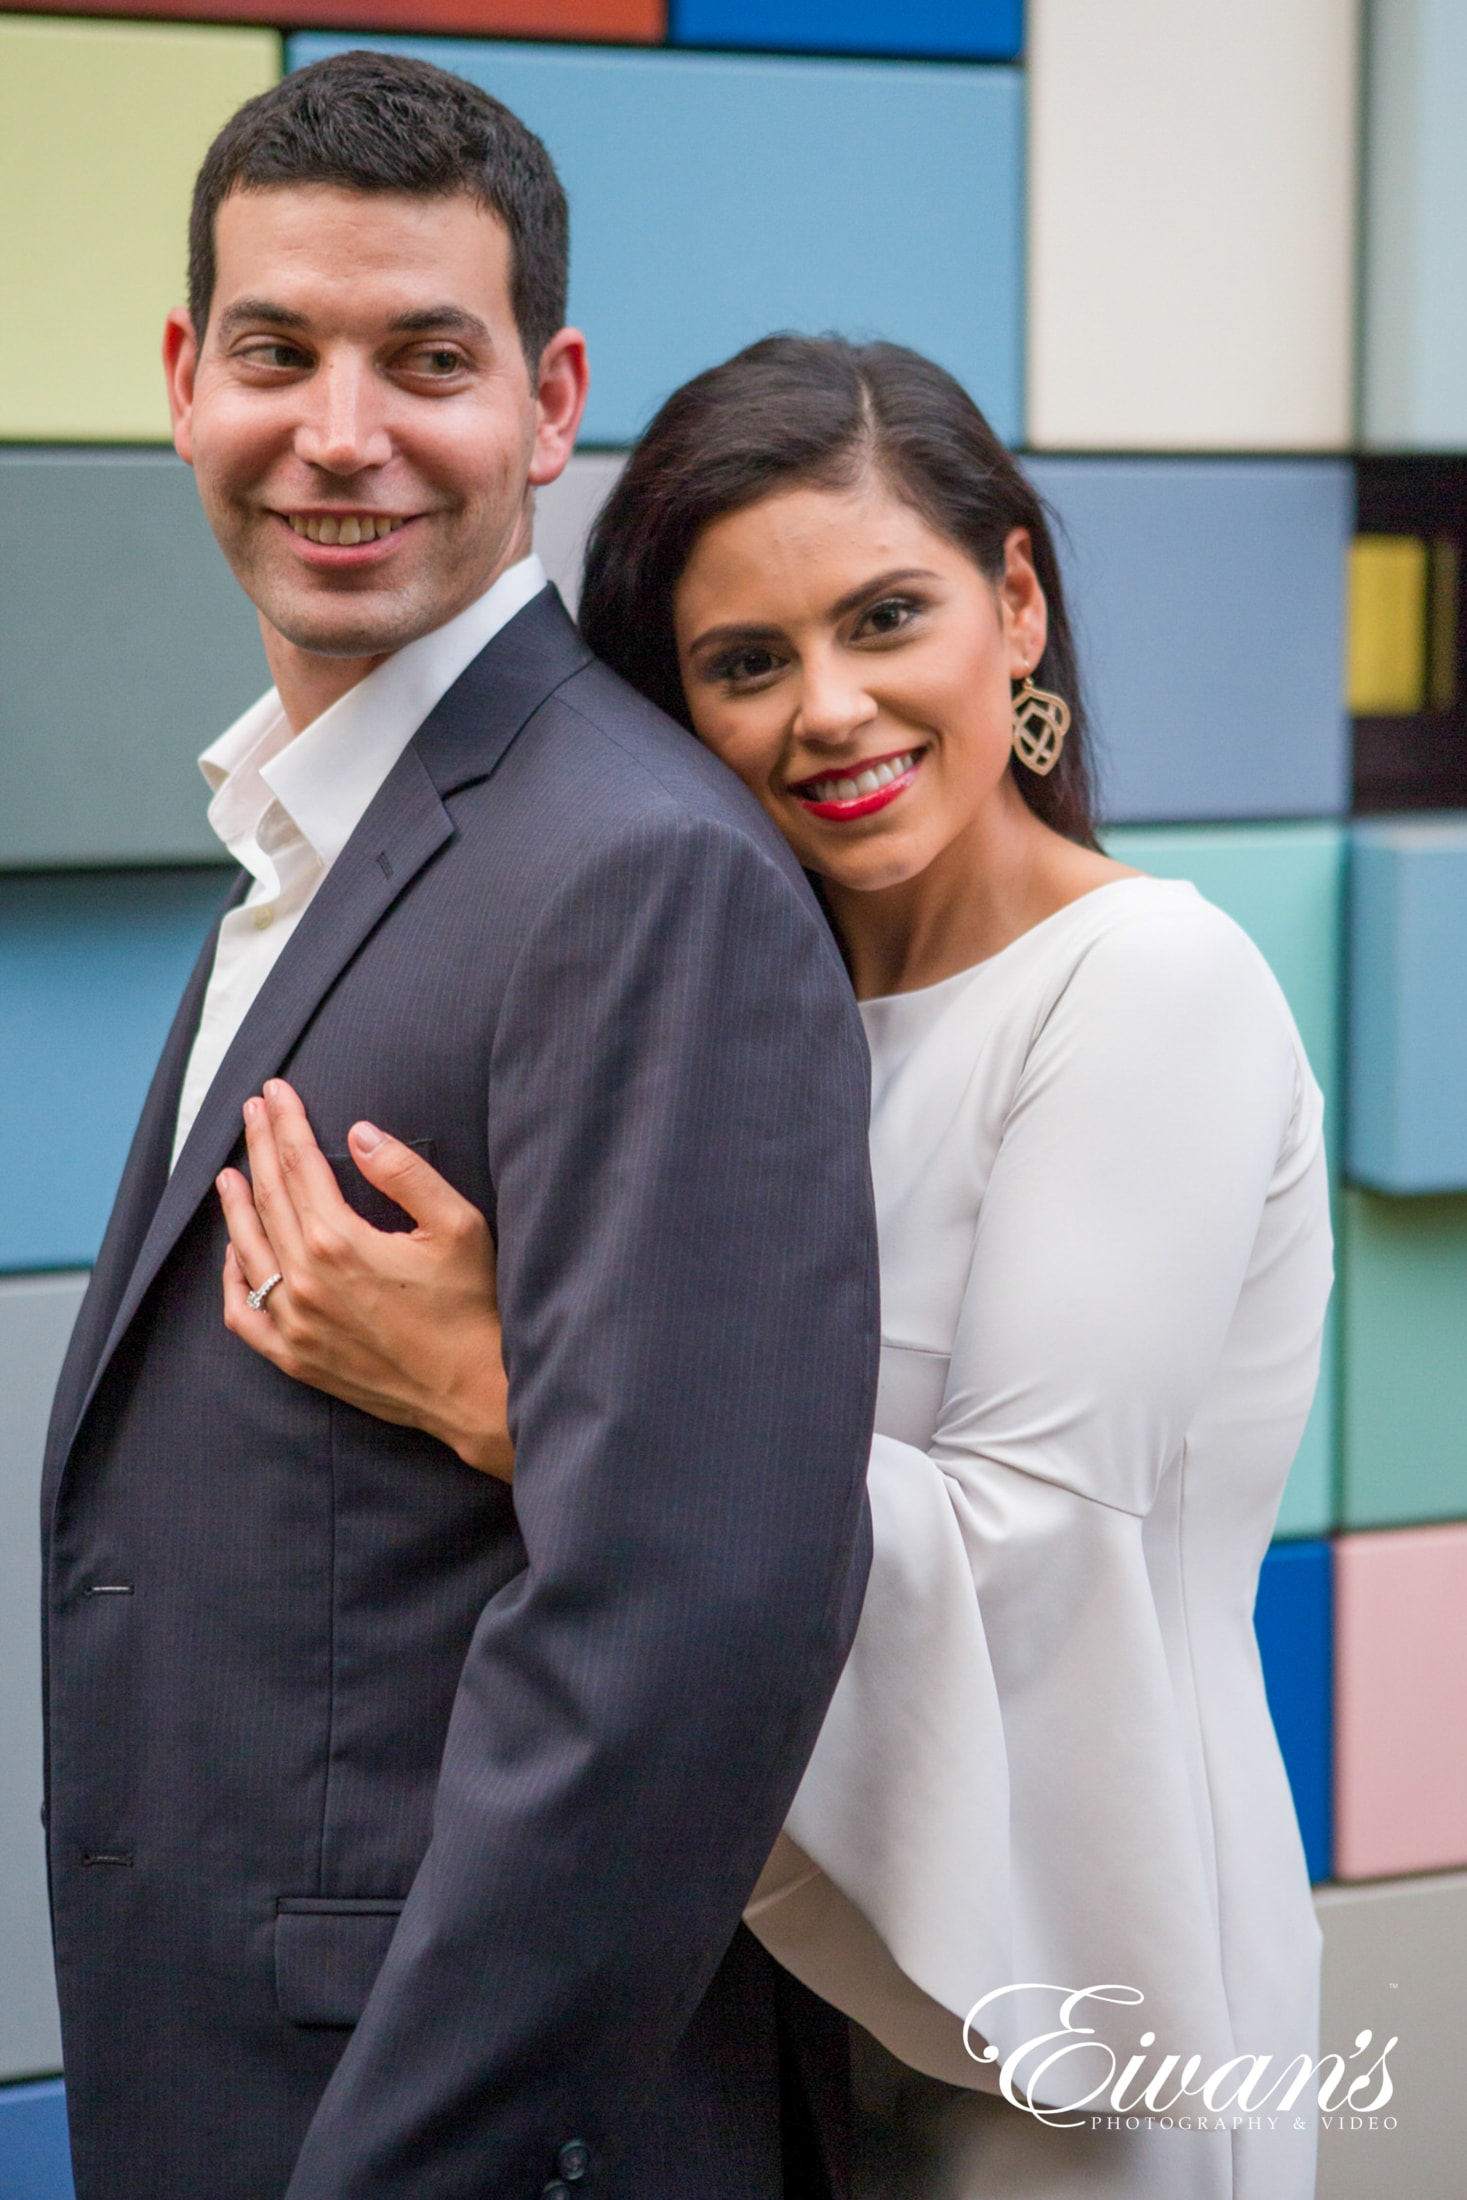 image of engaged man and woman, woman is hugging man from behind in front of a backdrop of colored squares